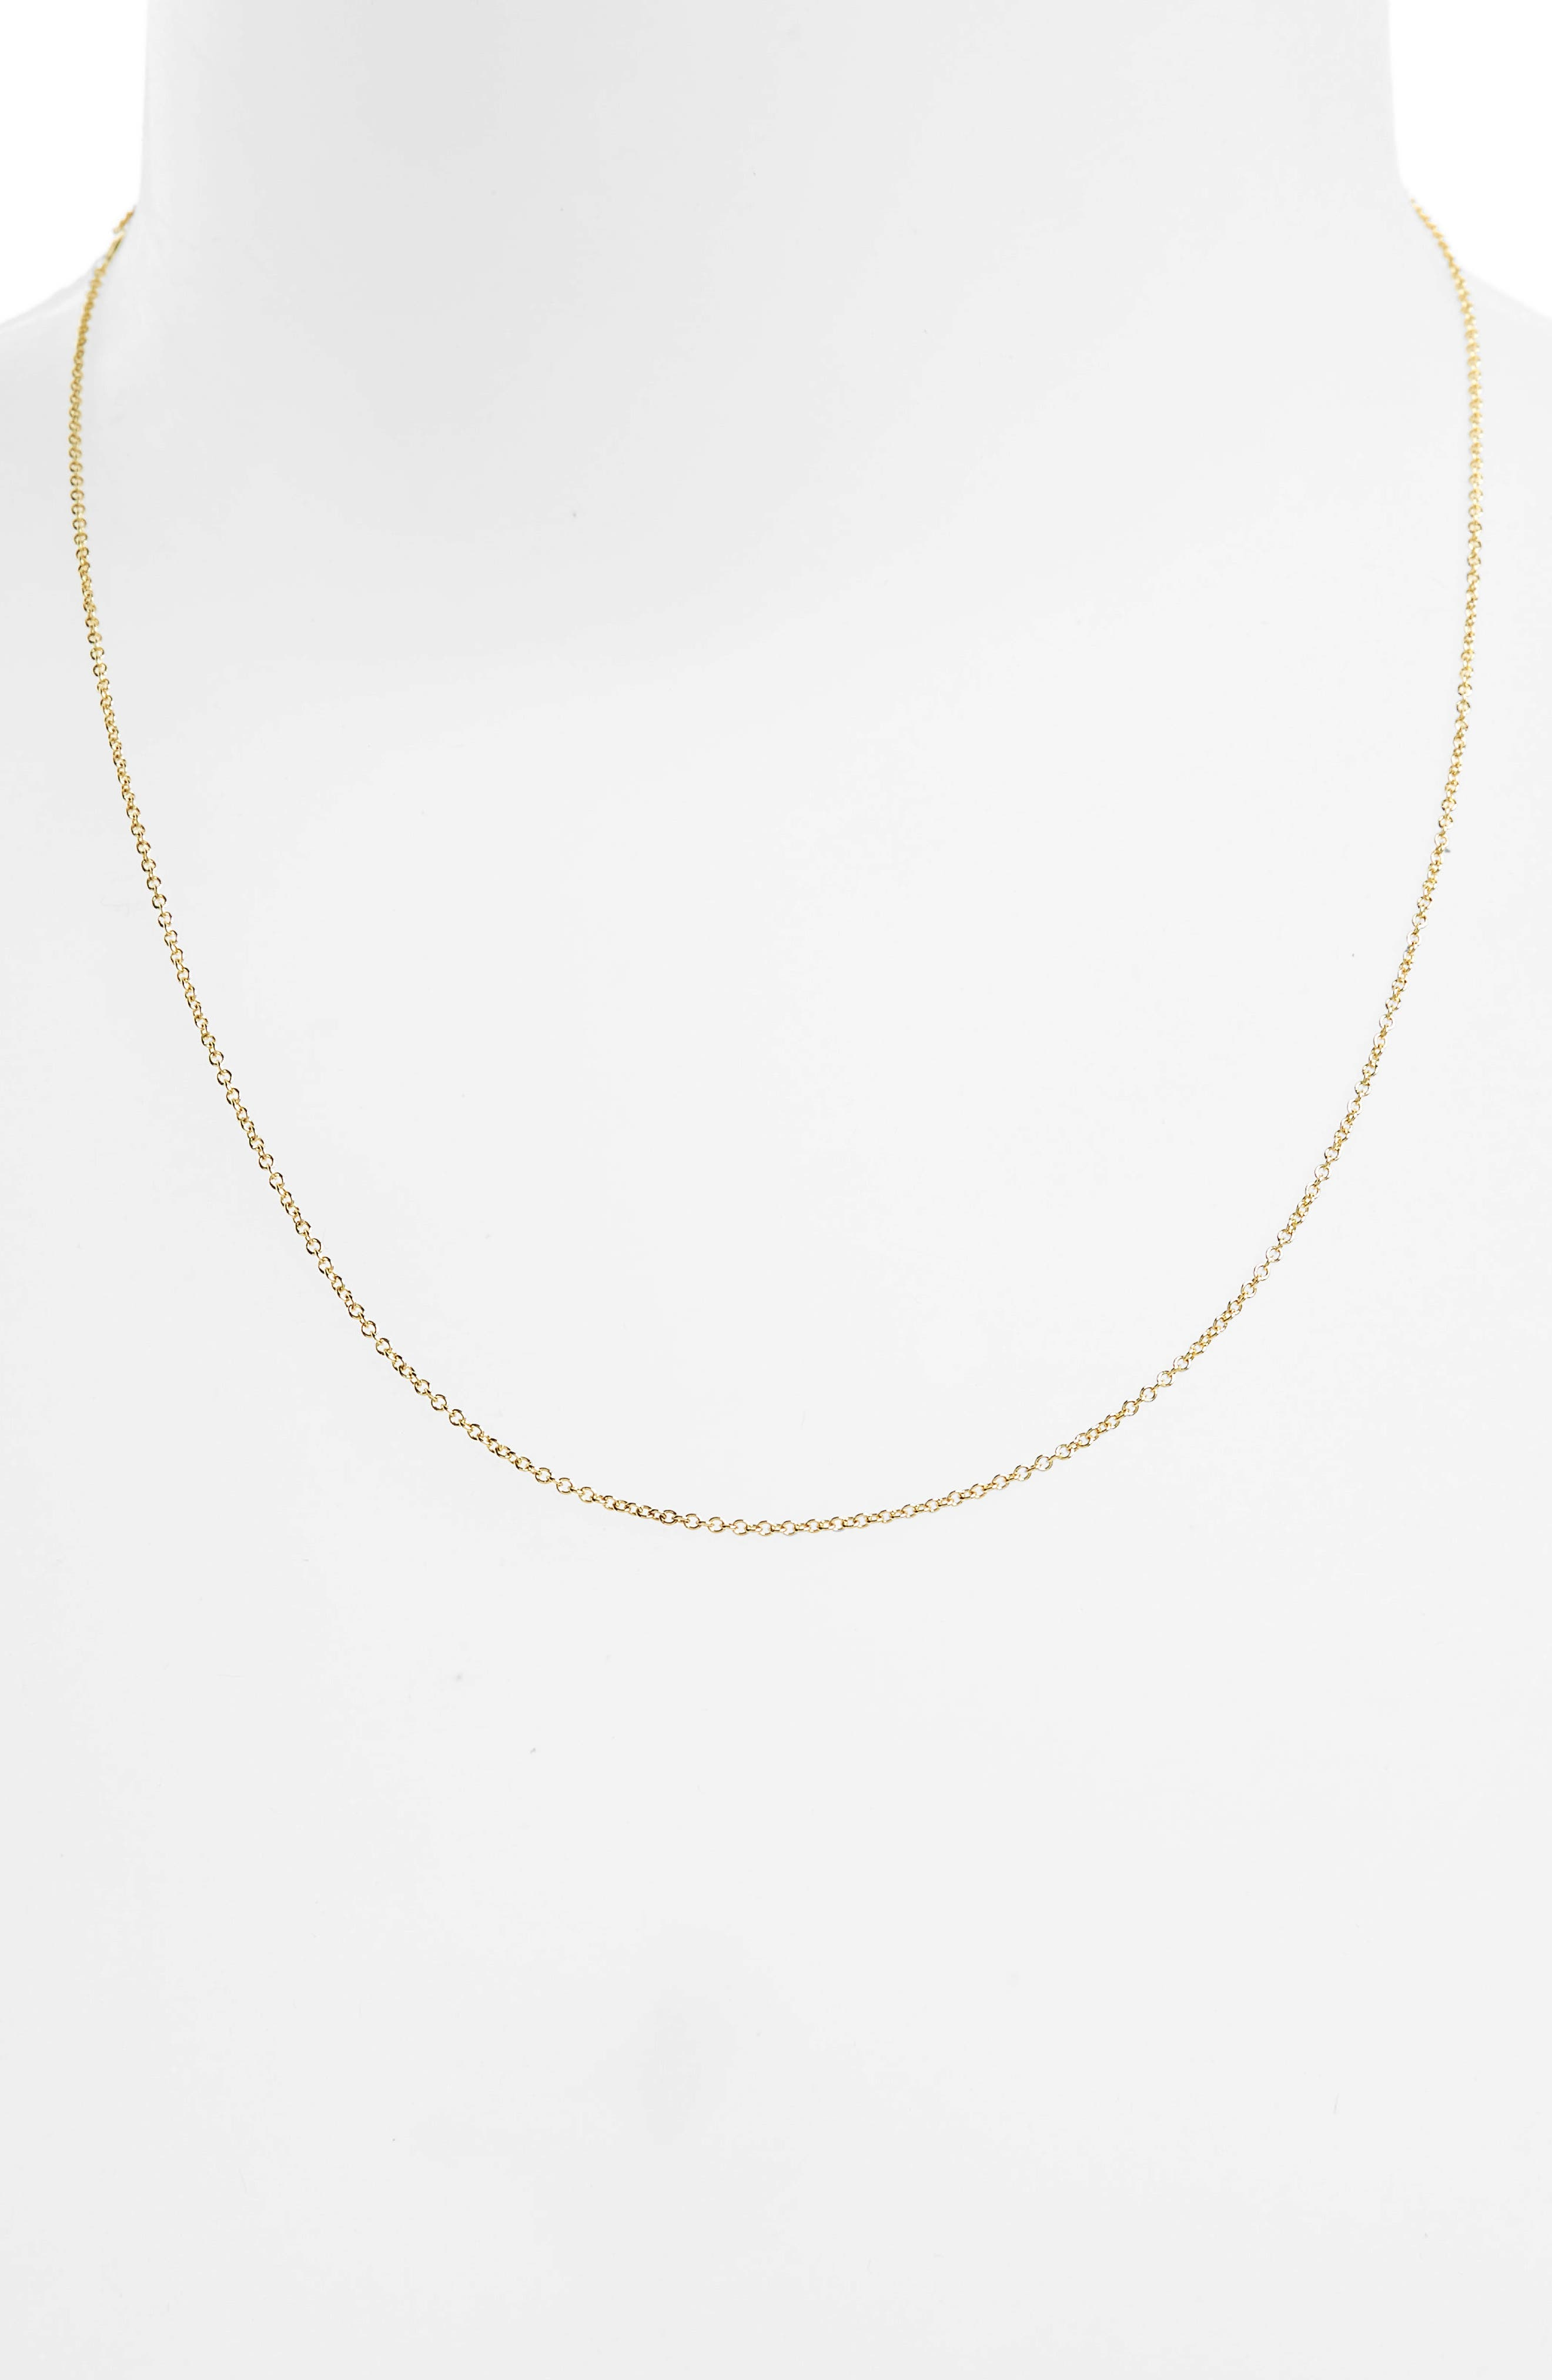 14K Gold Rolo Chain Necklace,                             Alternate thumbnail 2, color,                             Yellow Gold